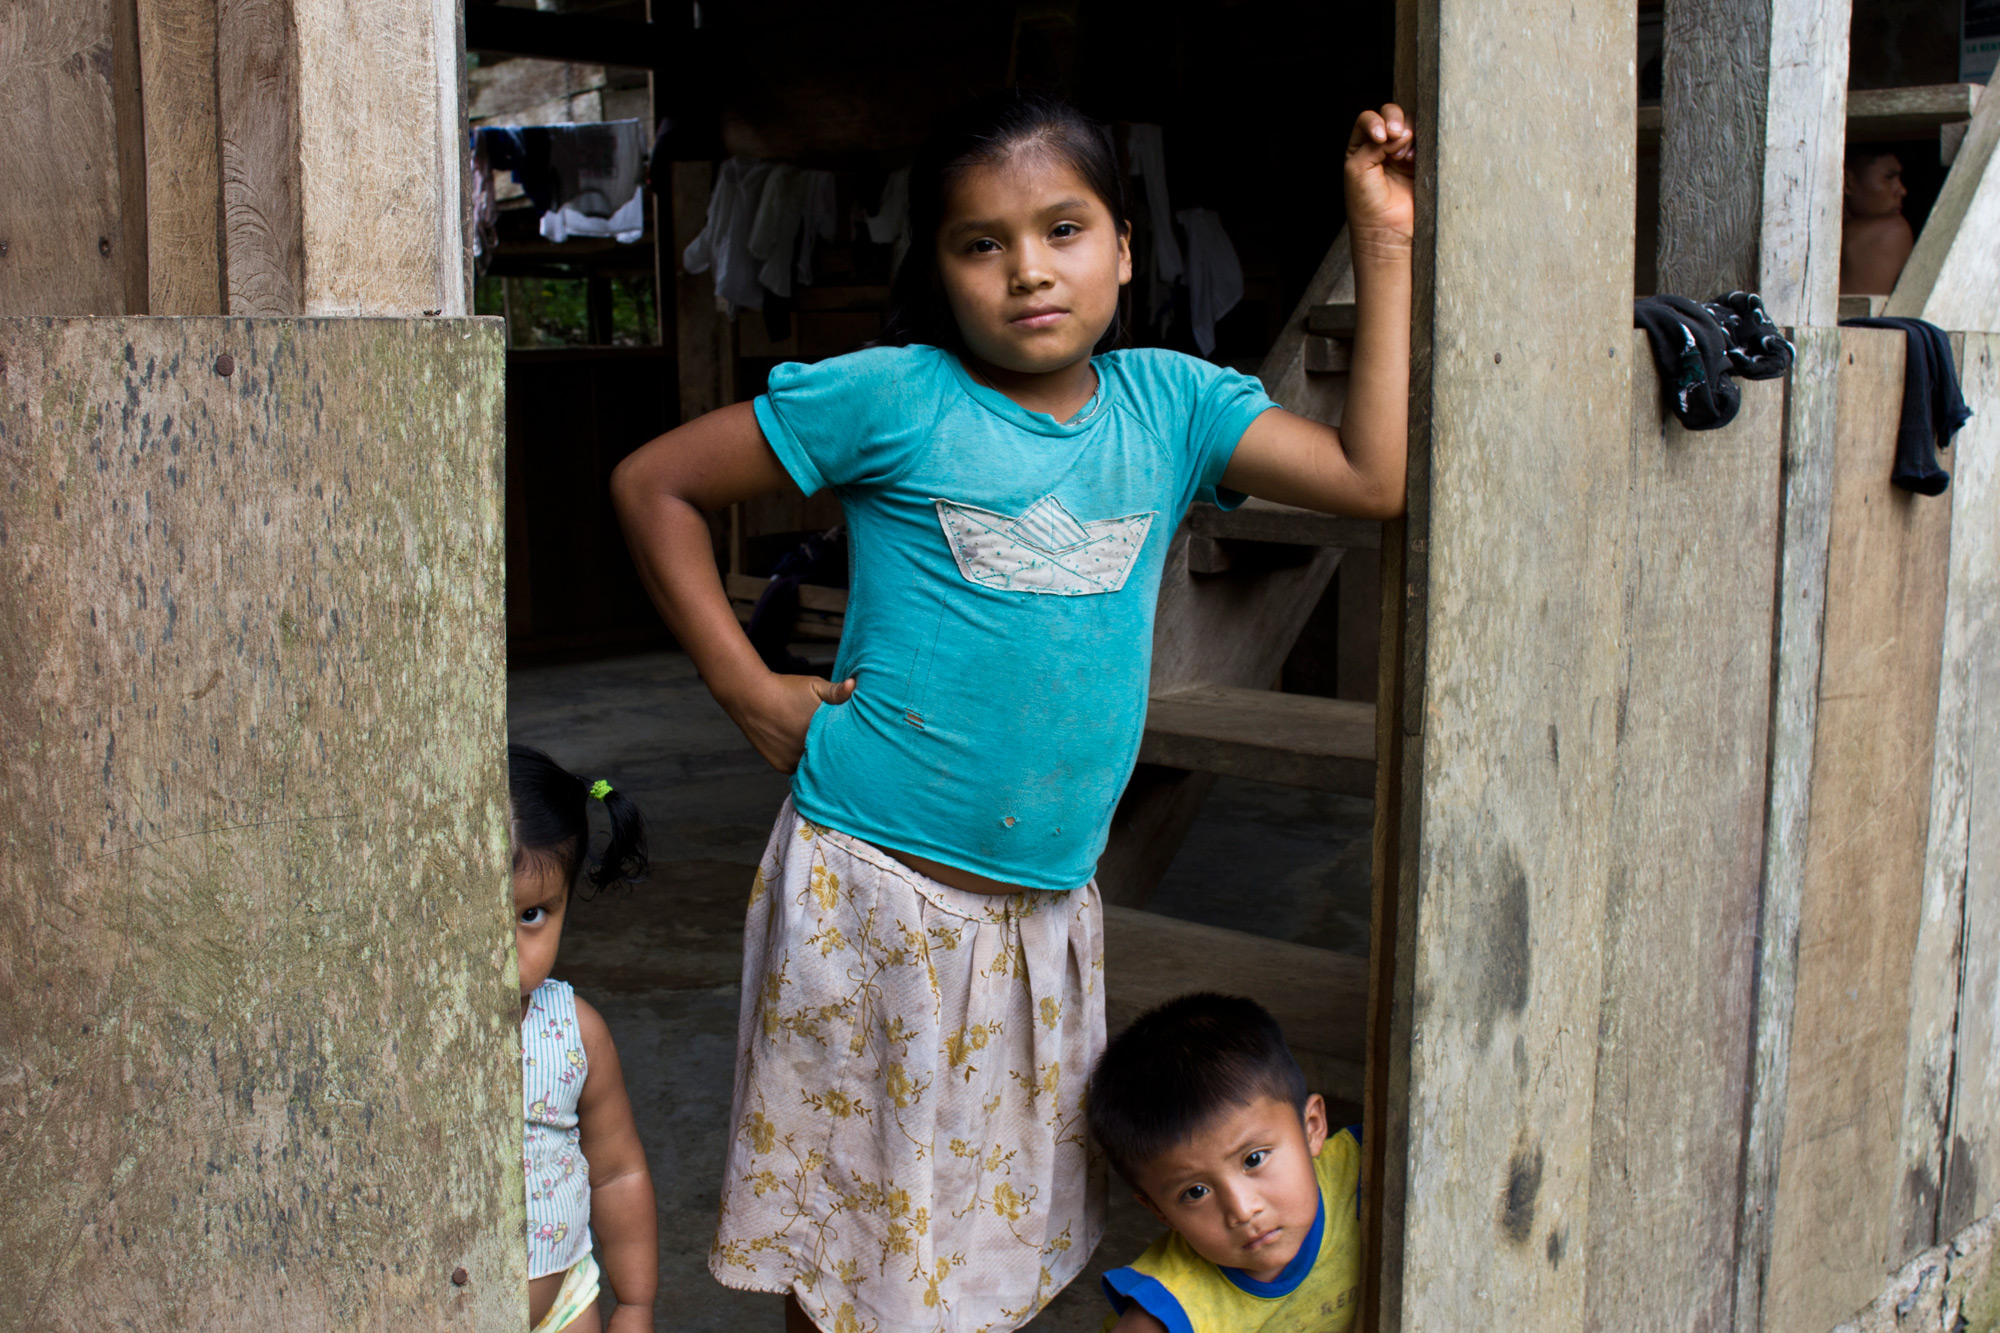 Children view us skeptically as their father instructs us that the path changed recently due to rainy season flooding. It was the first time the littlest ones had seen foreigners in their village, Norteña.